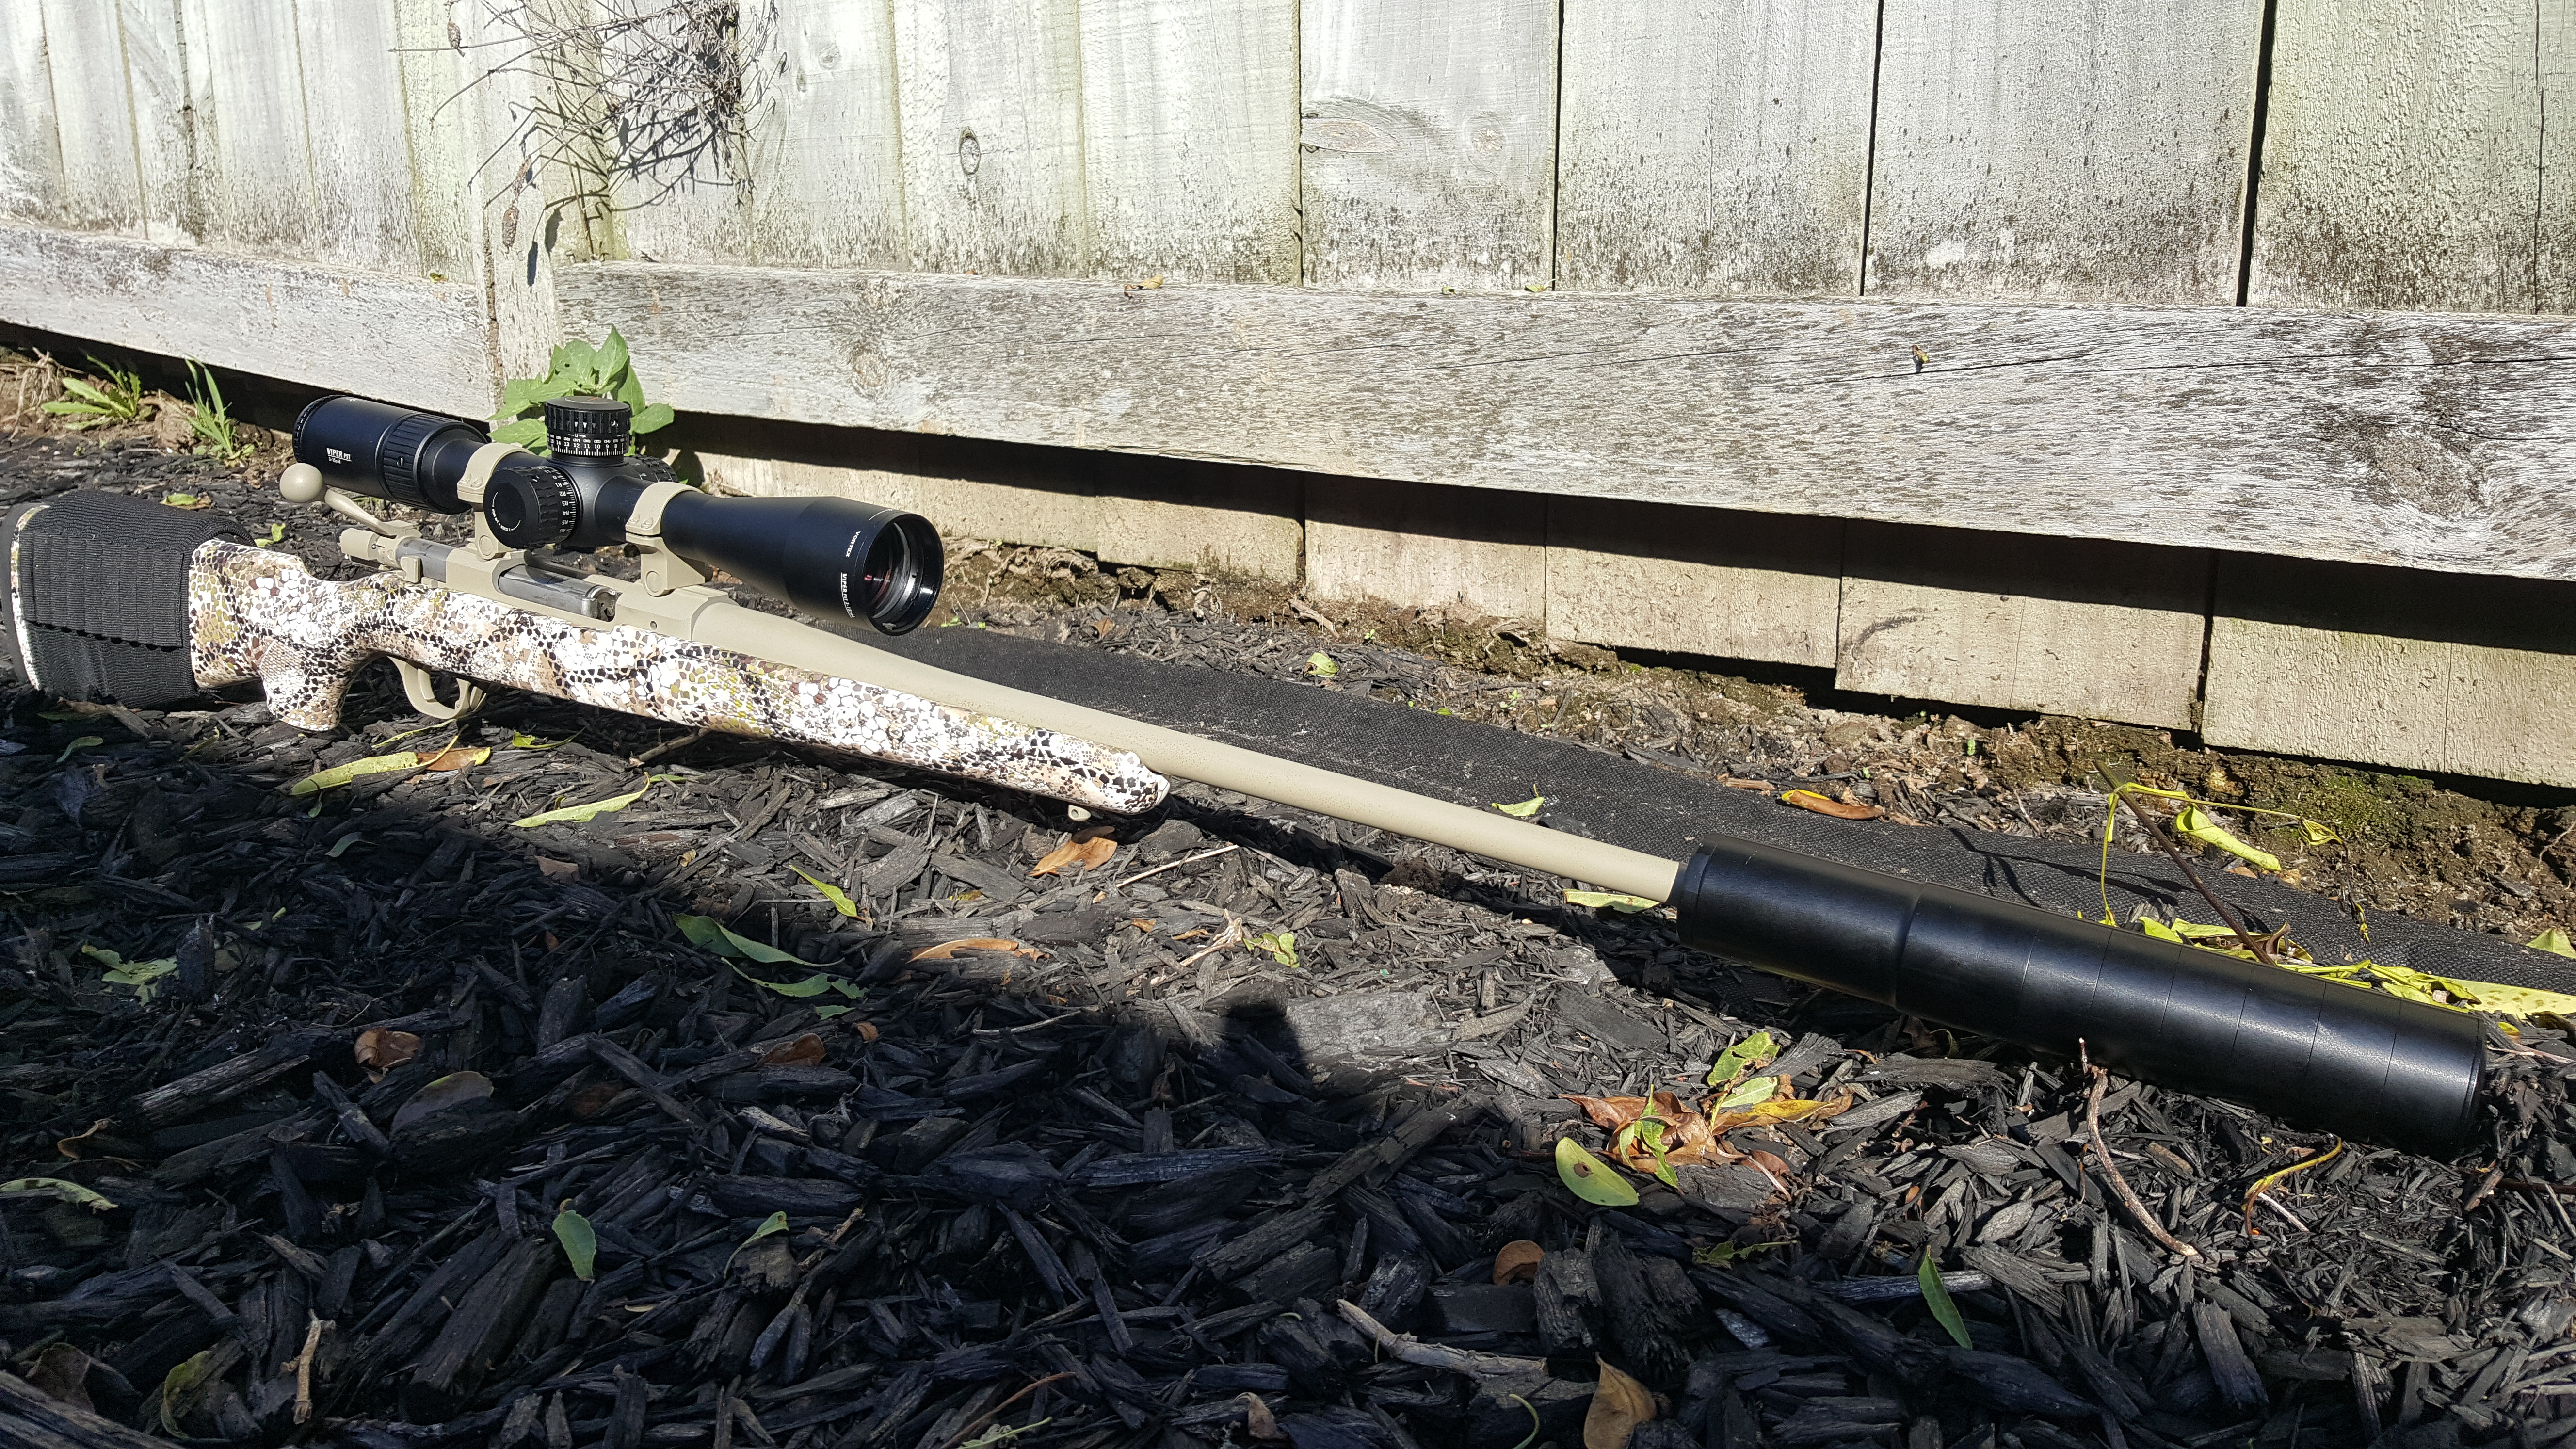 Name:  Ruger M77 Hawkeye Synthetic Stock Approach Camo Vortex Viper PST Gen II 3-15x44 A-Tec Maxim Supp.jpg Views: 284 Size:  7.16 MB